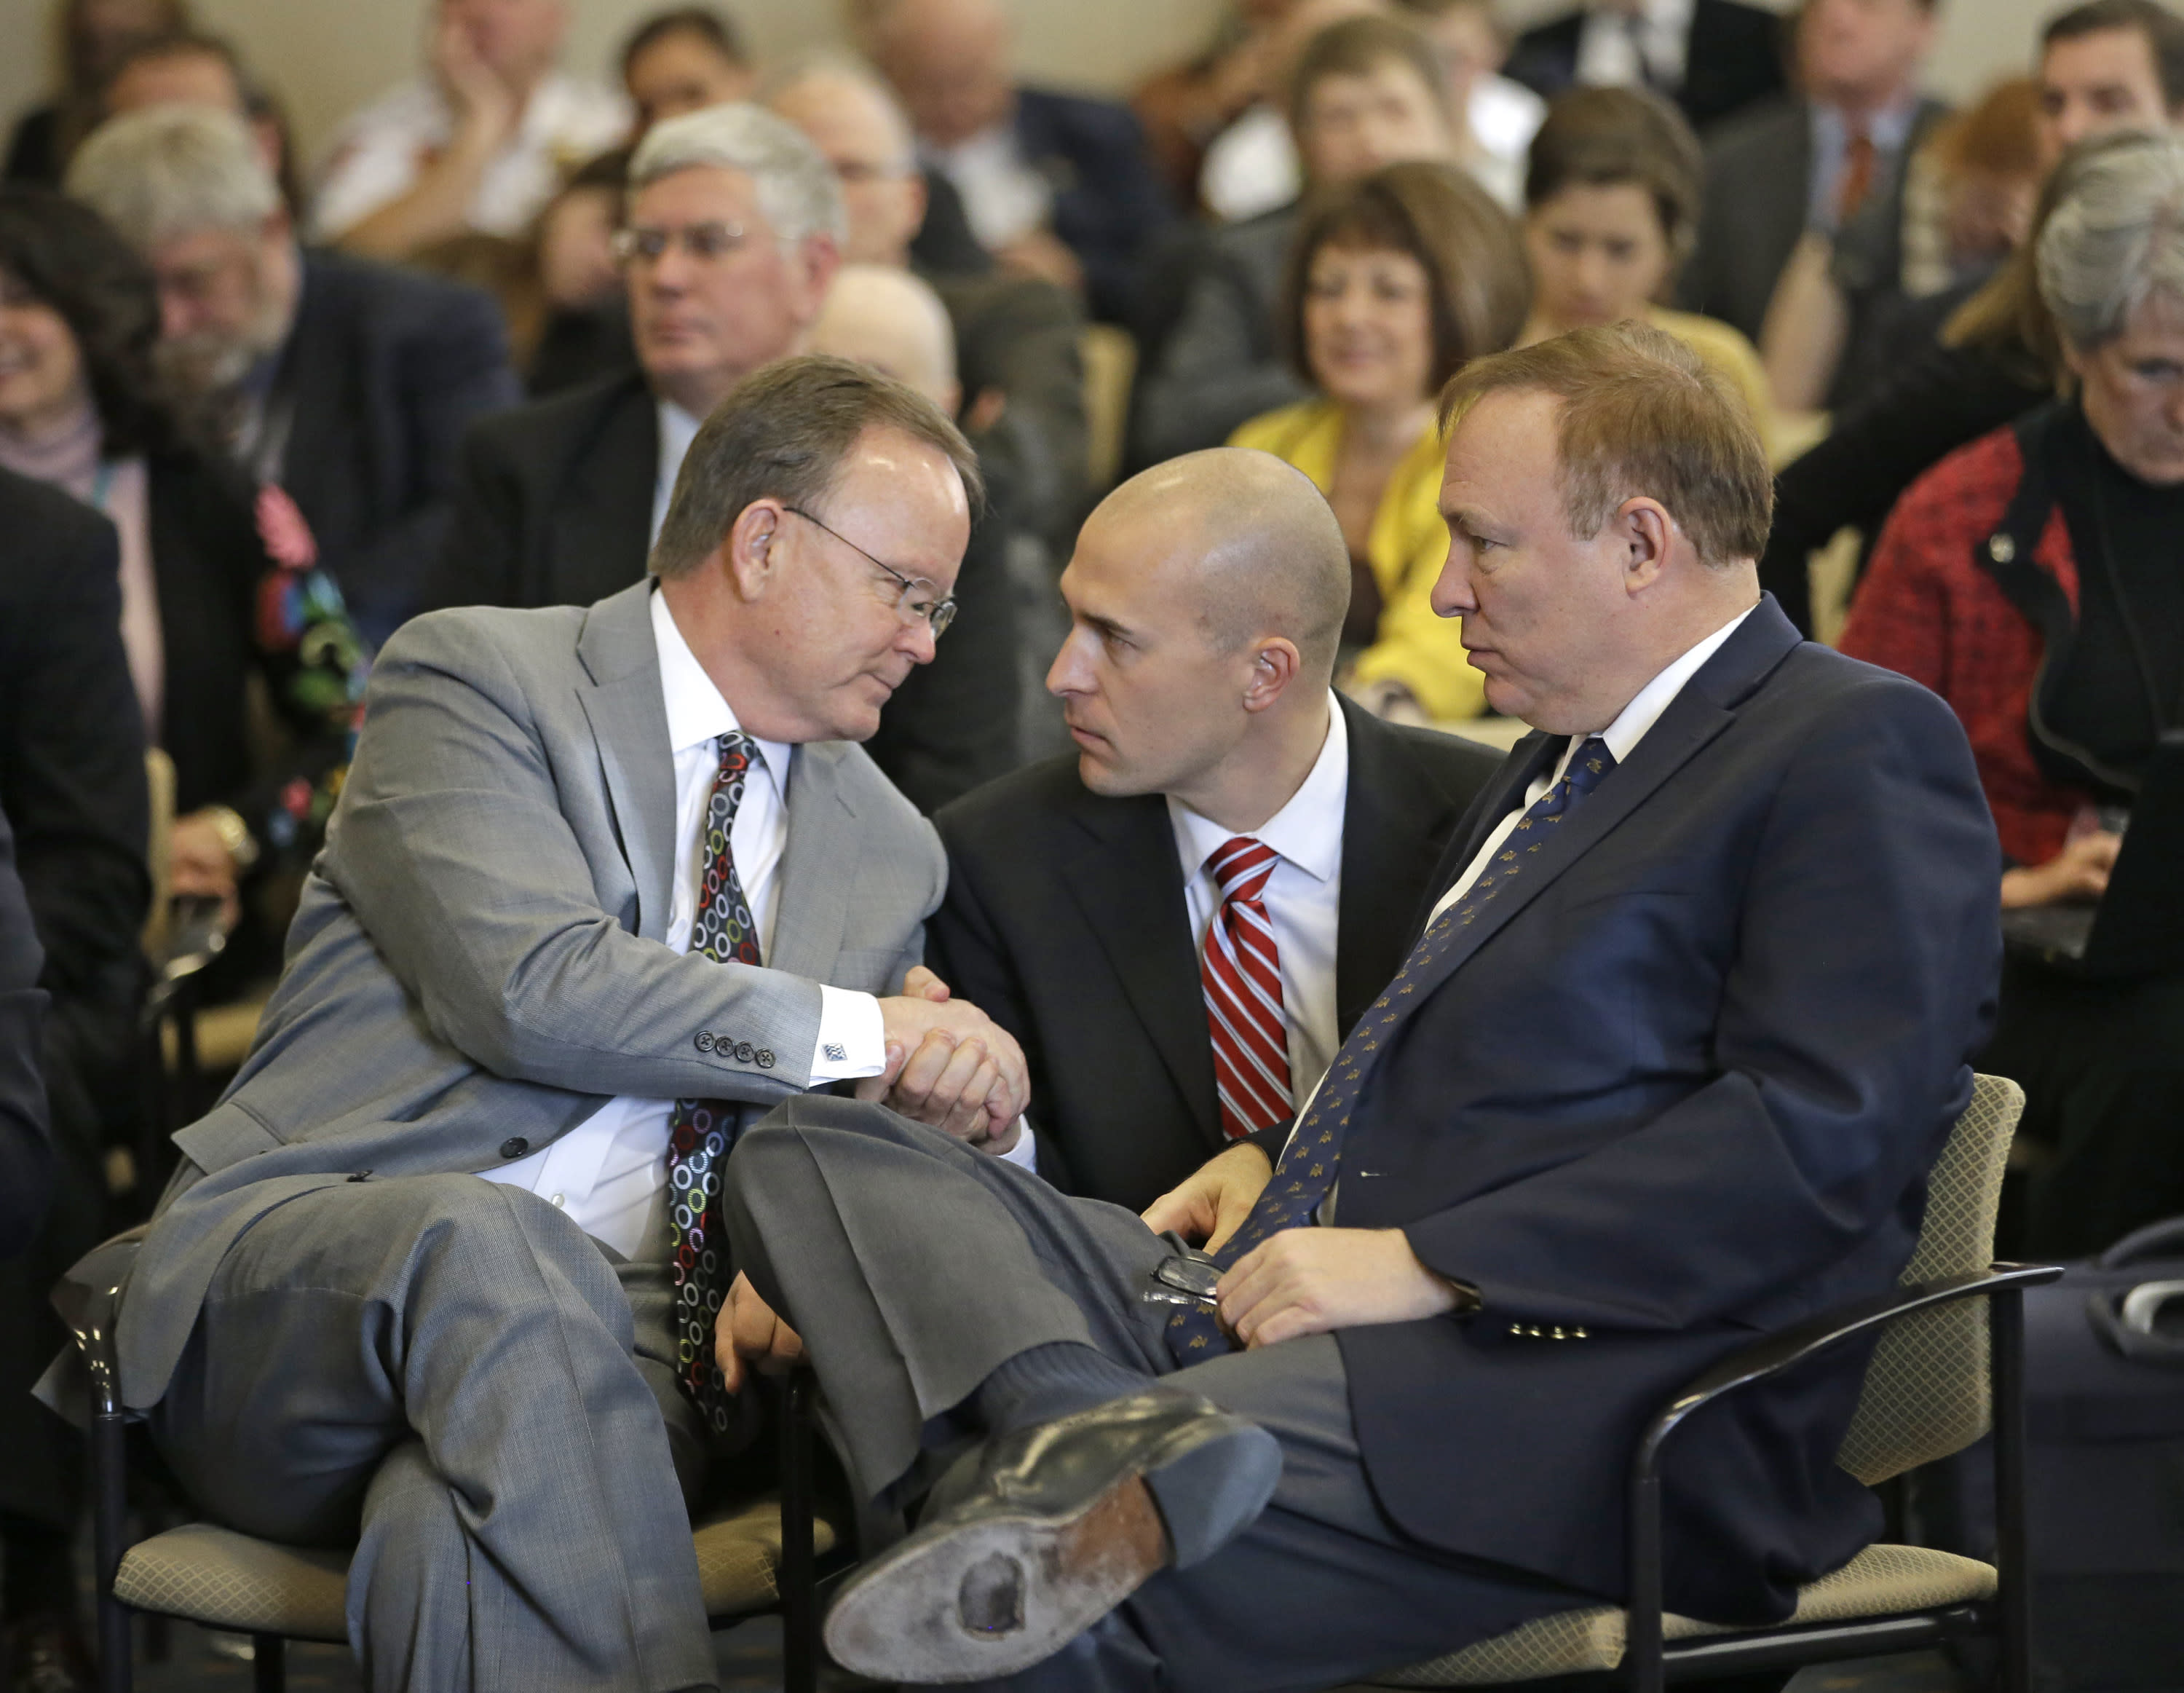 LGBT anti-discrimination bill passes Utah test